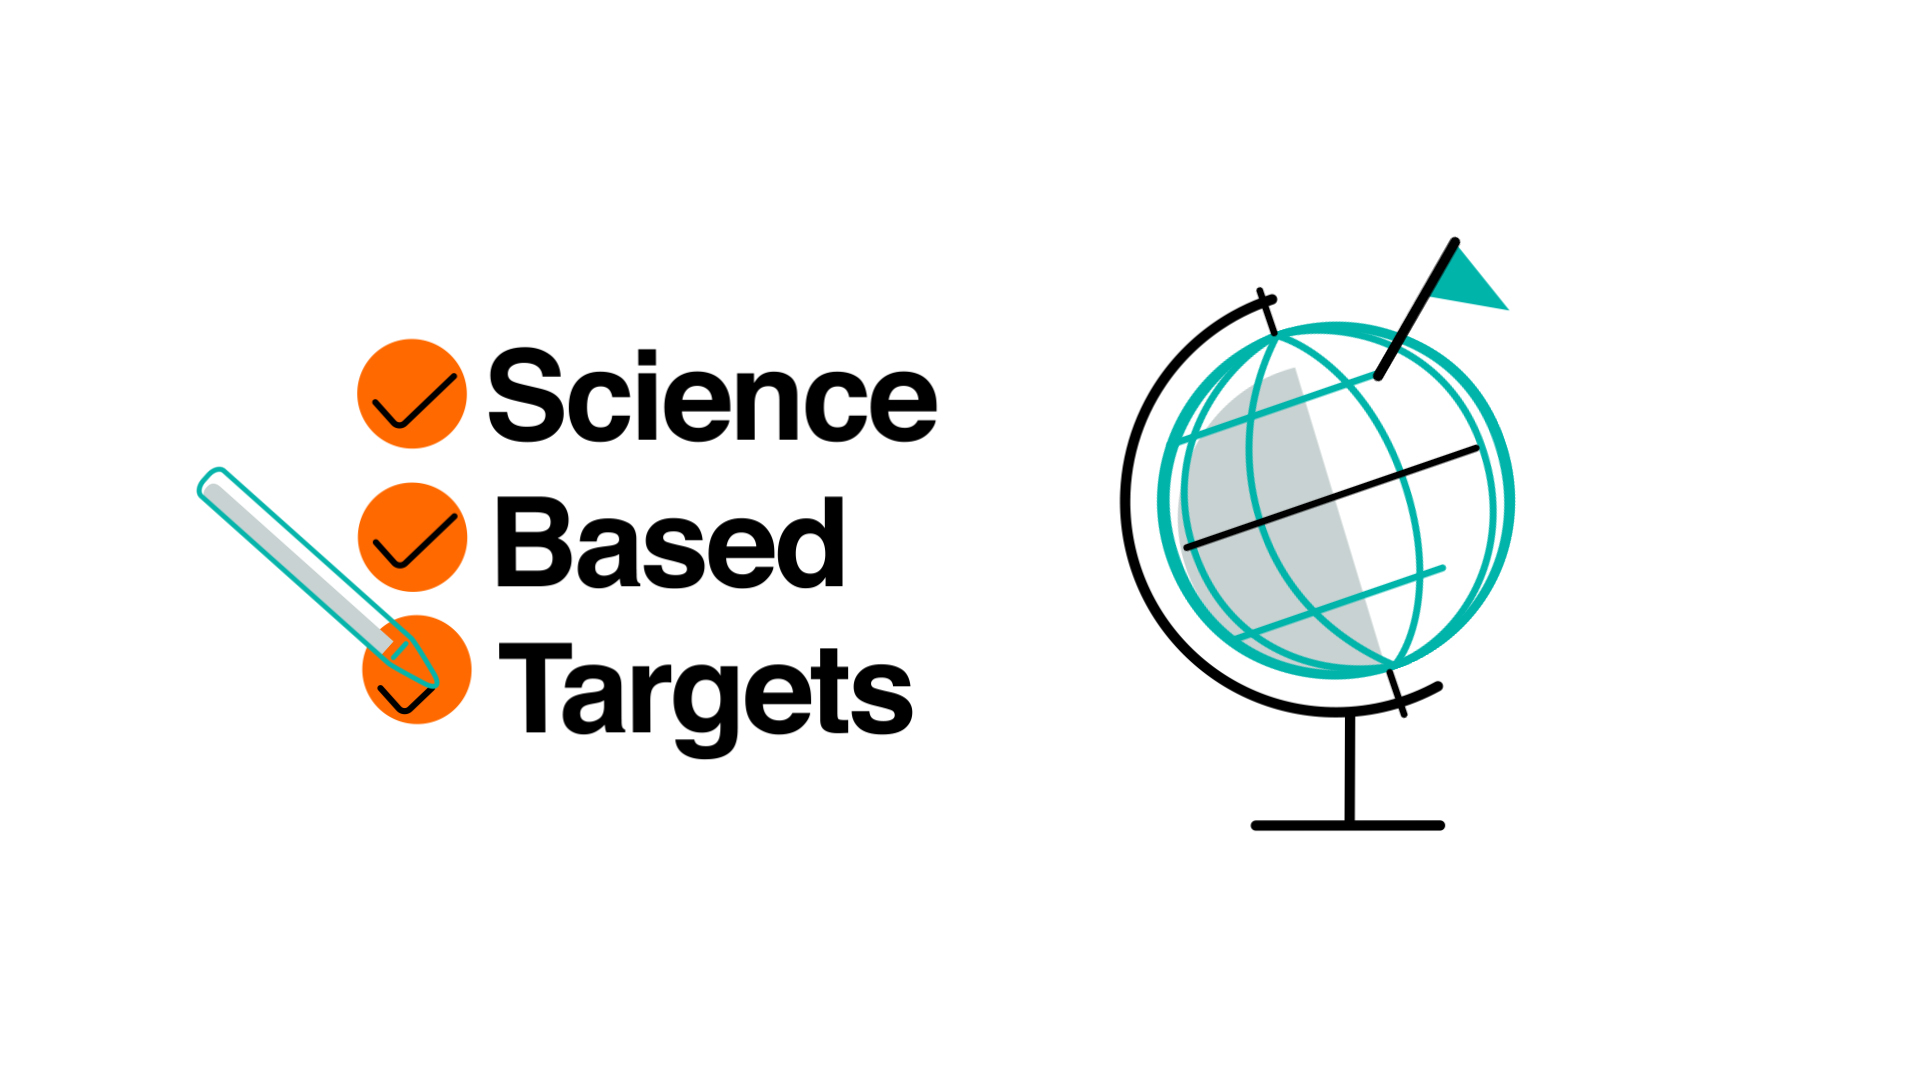 Zalando Science Based Targets